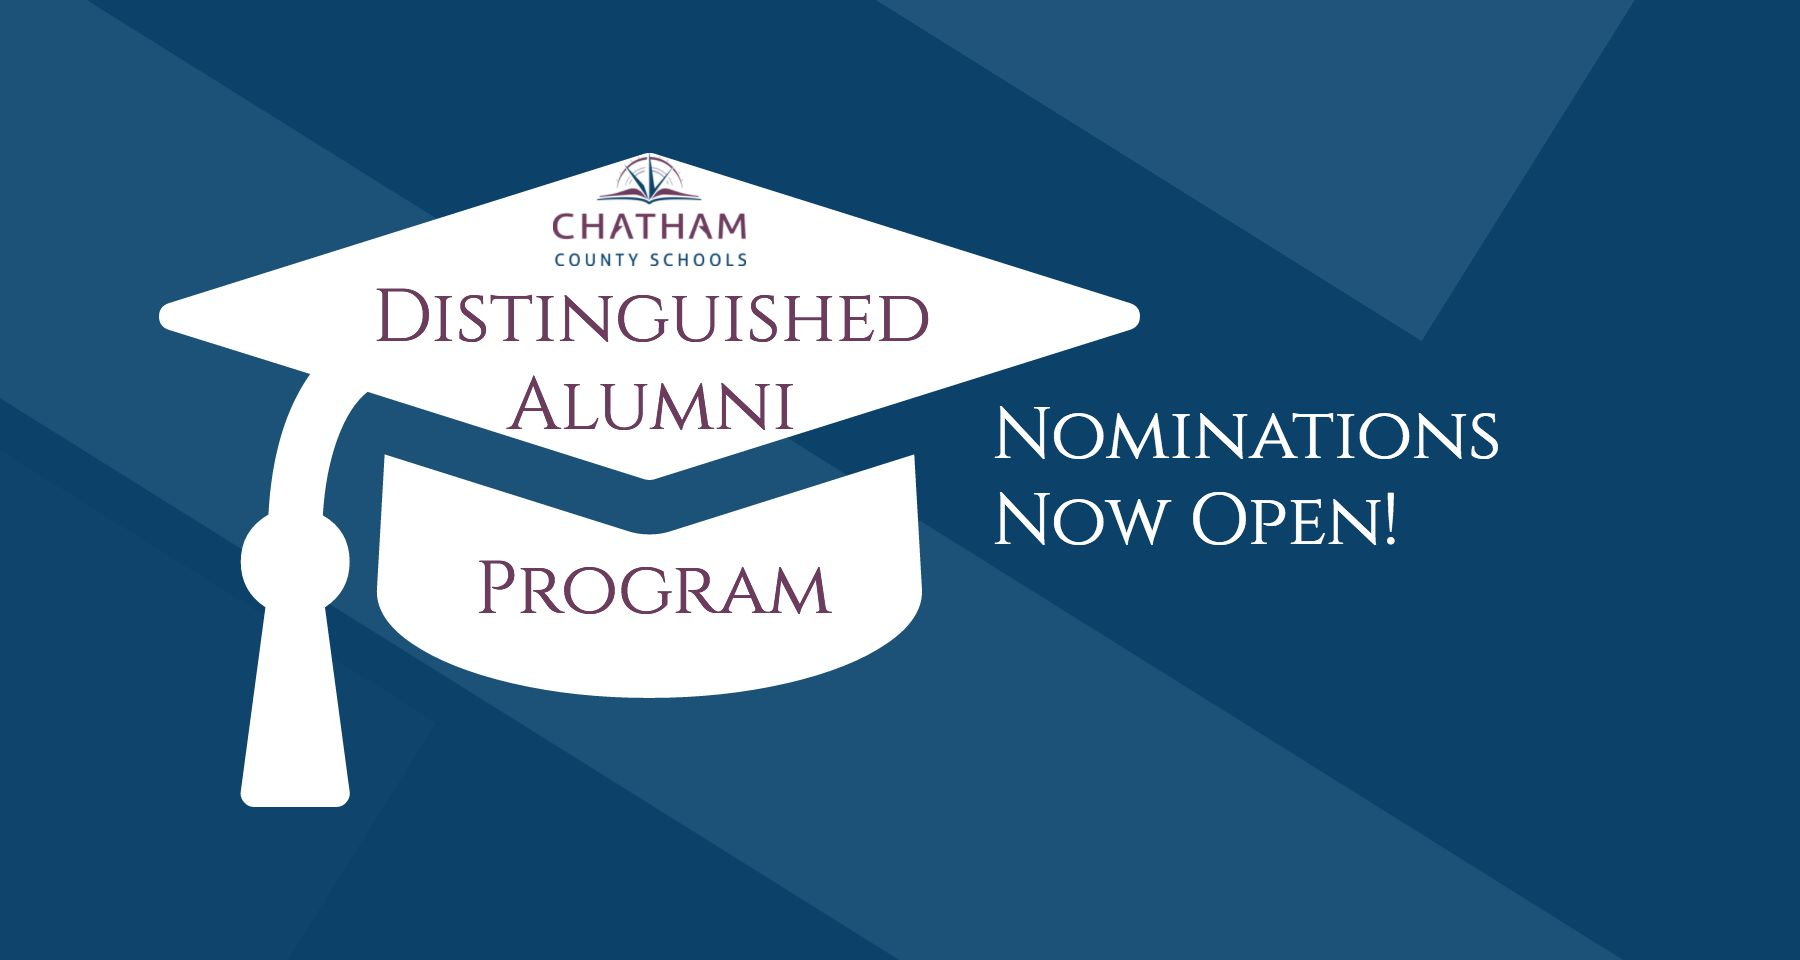 Distinguished Alumni Awards Program Launches